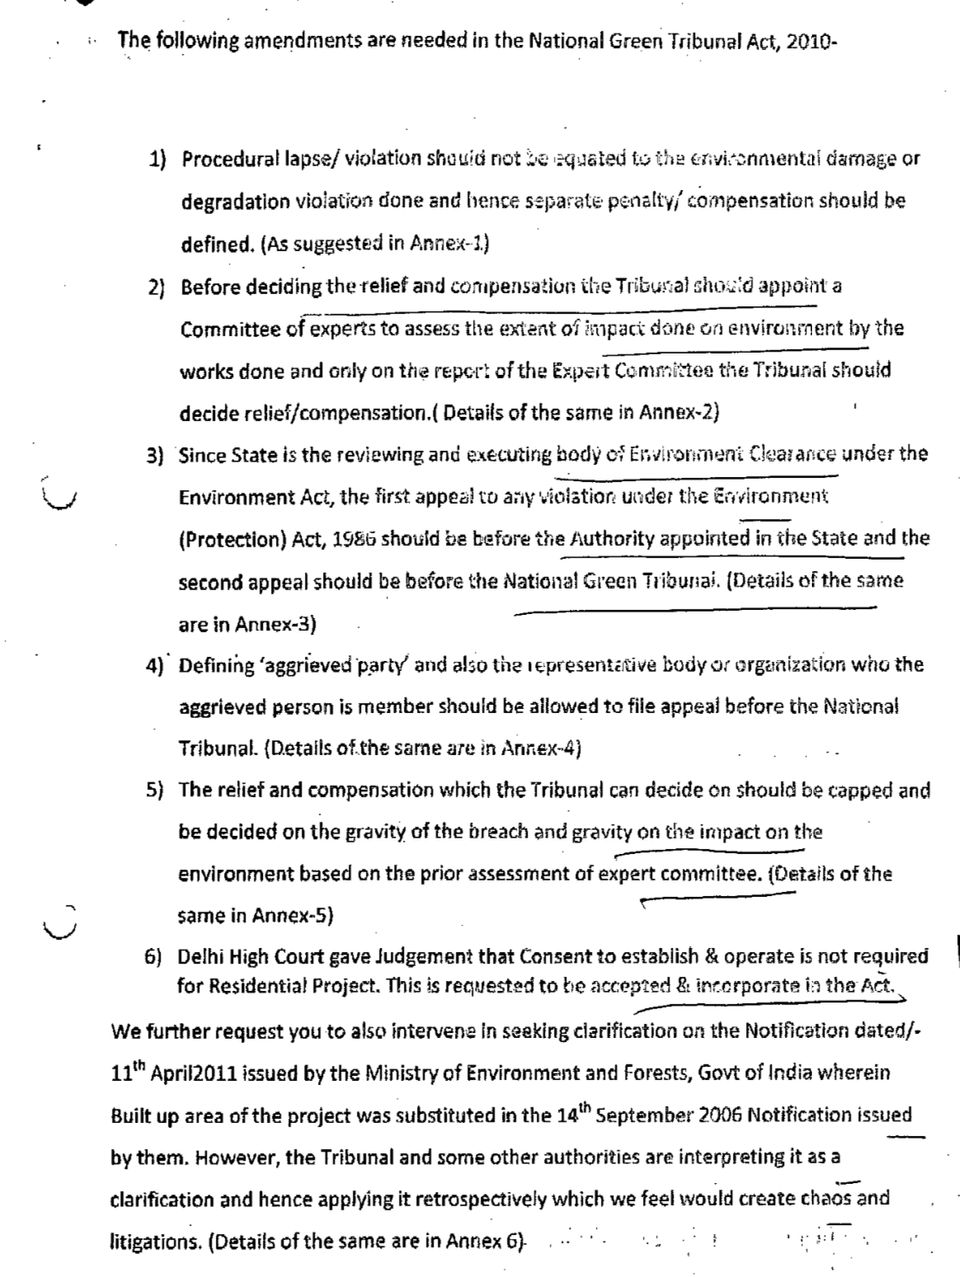 This page was also a part of documents attached with Rajya Sabha MP Sharad Pawar's letter. The main text...